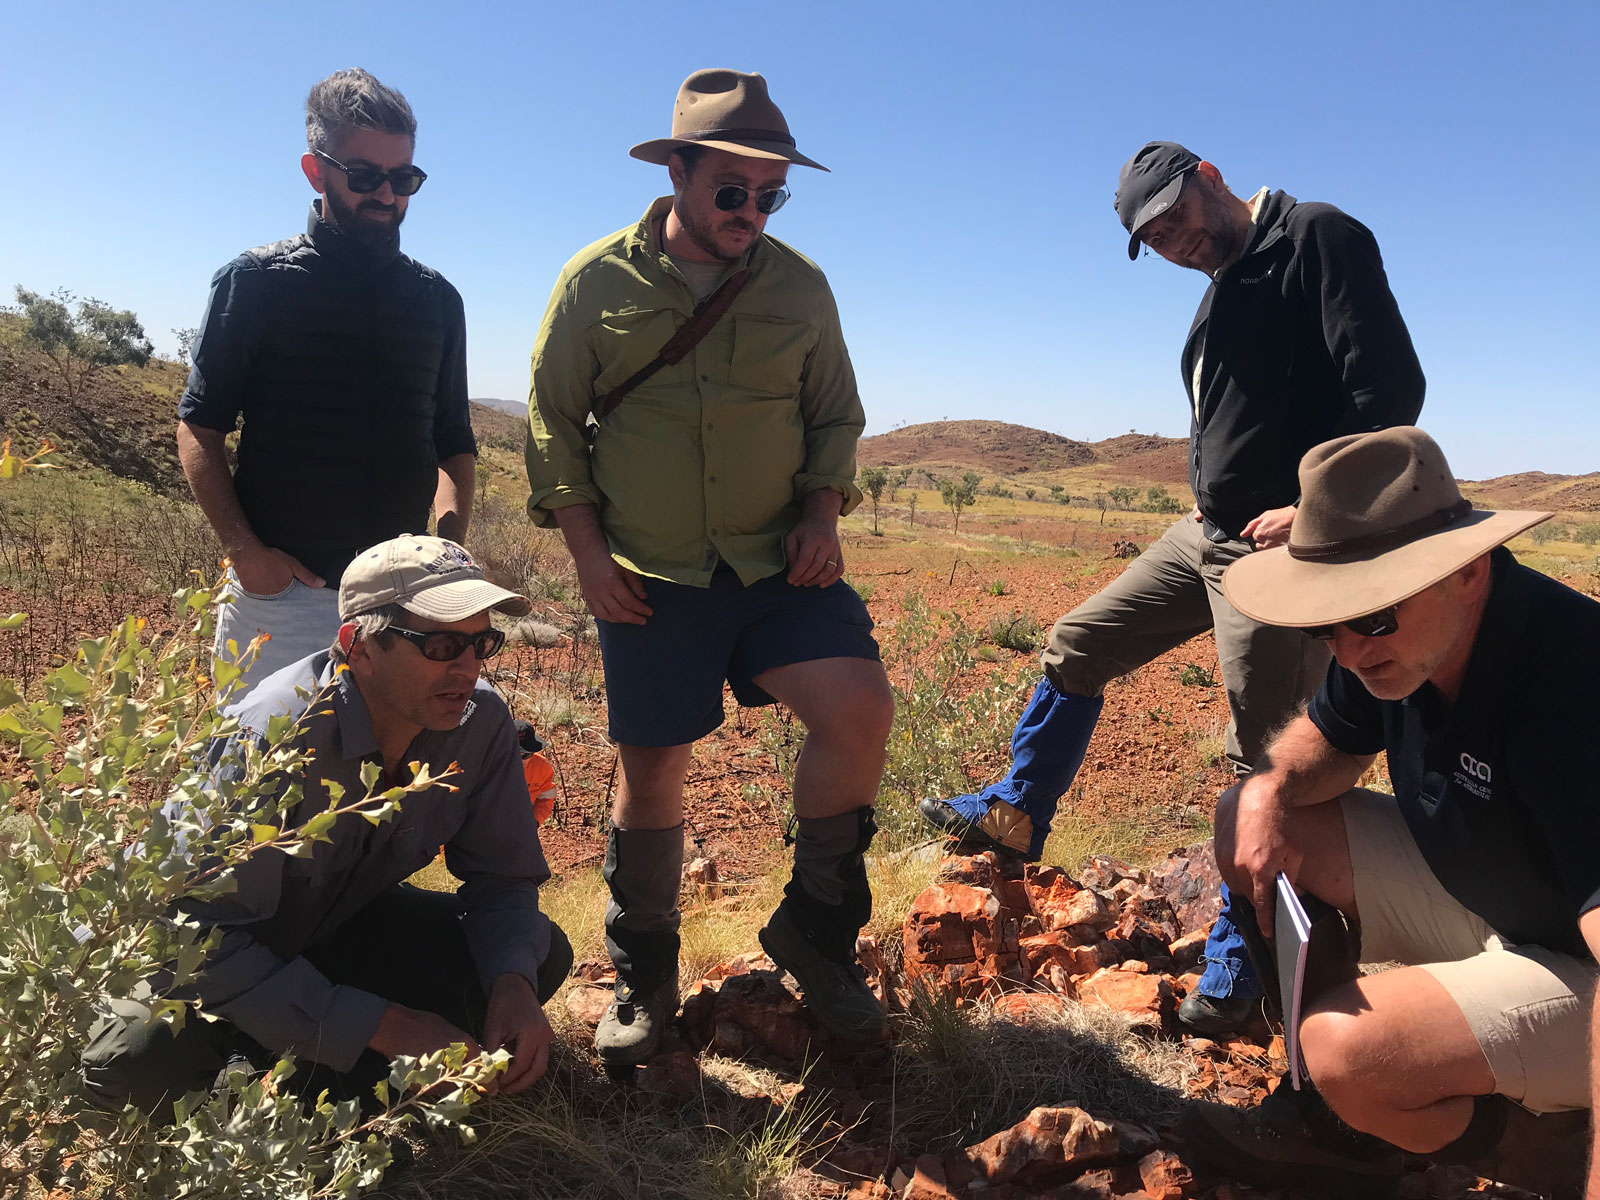 Scientists with NASA's Mars 2020 mission and the European-Russian ExoMars mission traveled to the Australian Outback to hone their research techniques before their missions launch to the Red Planet in the summer of 2020 to search for signs of ancient life on Mars.